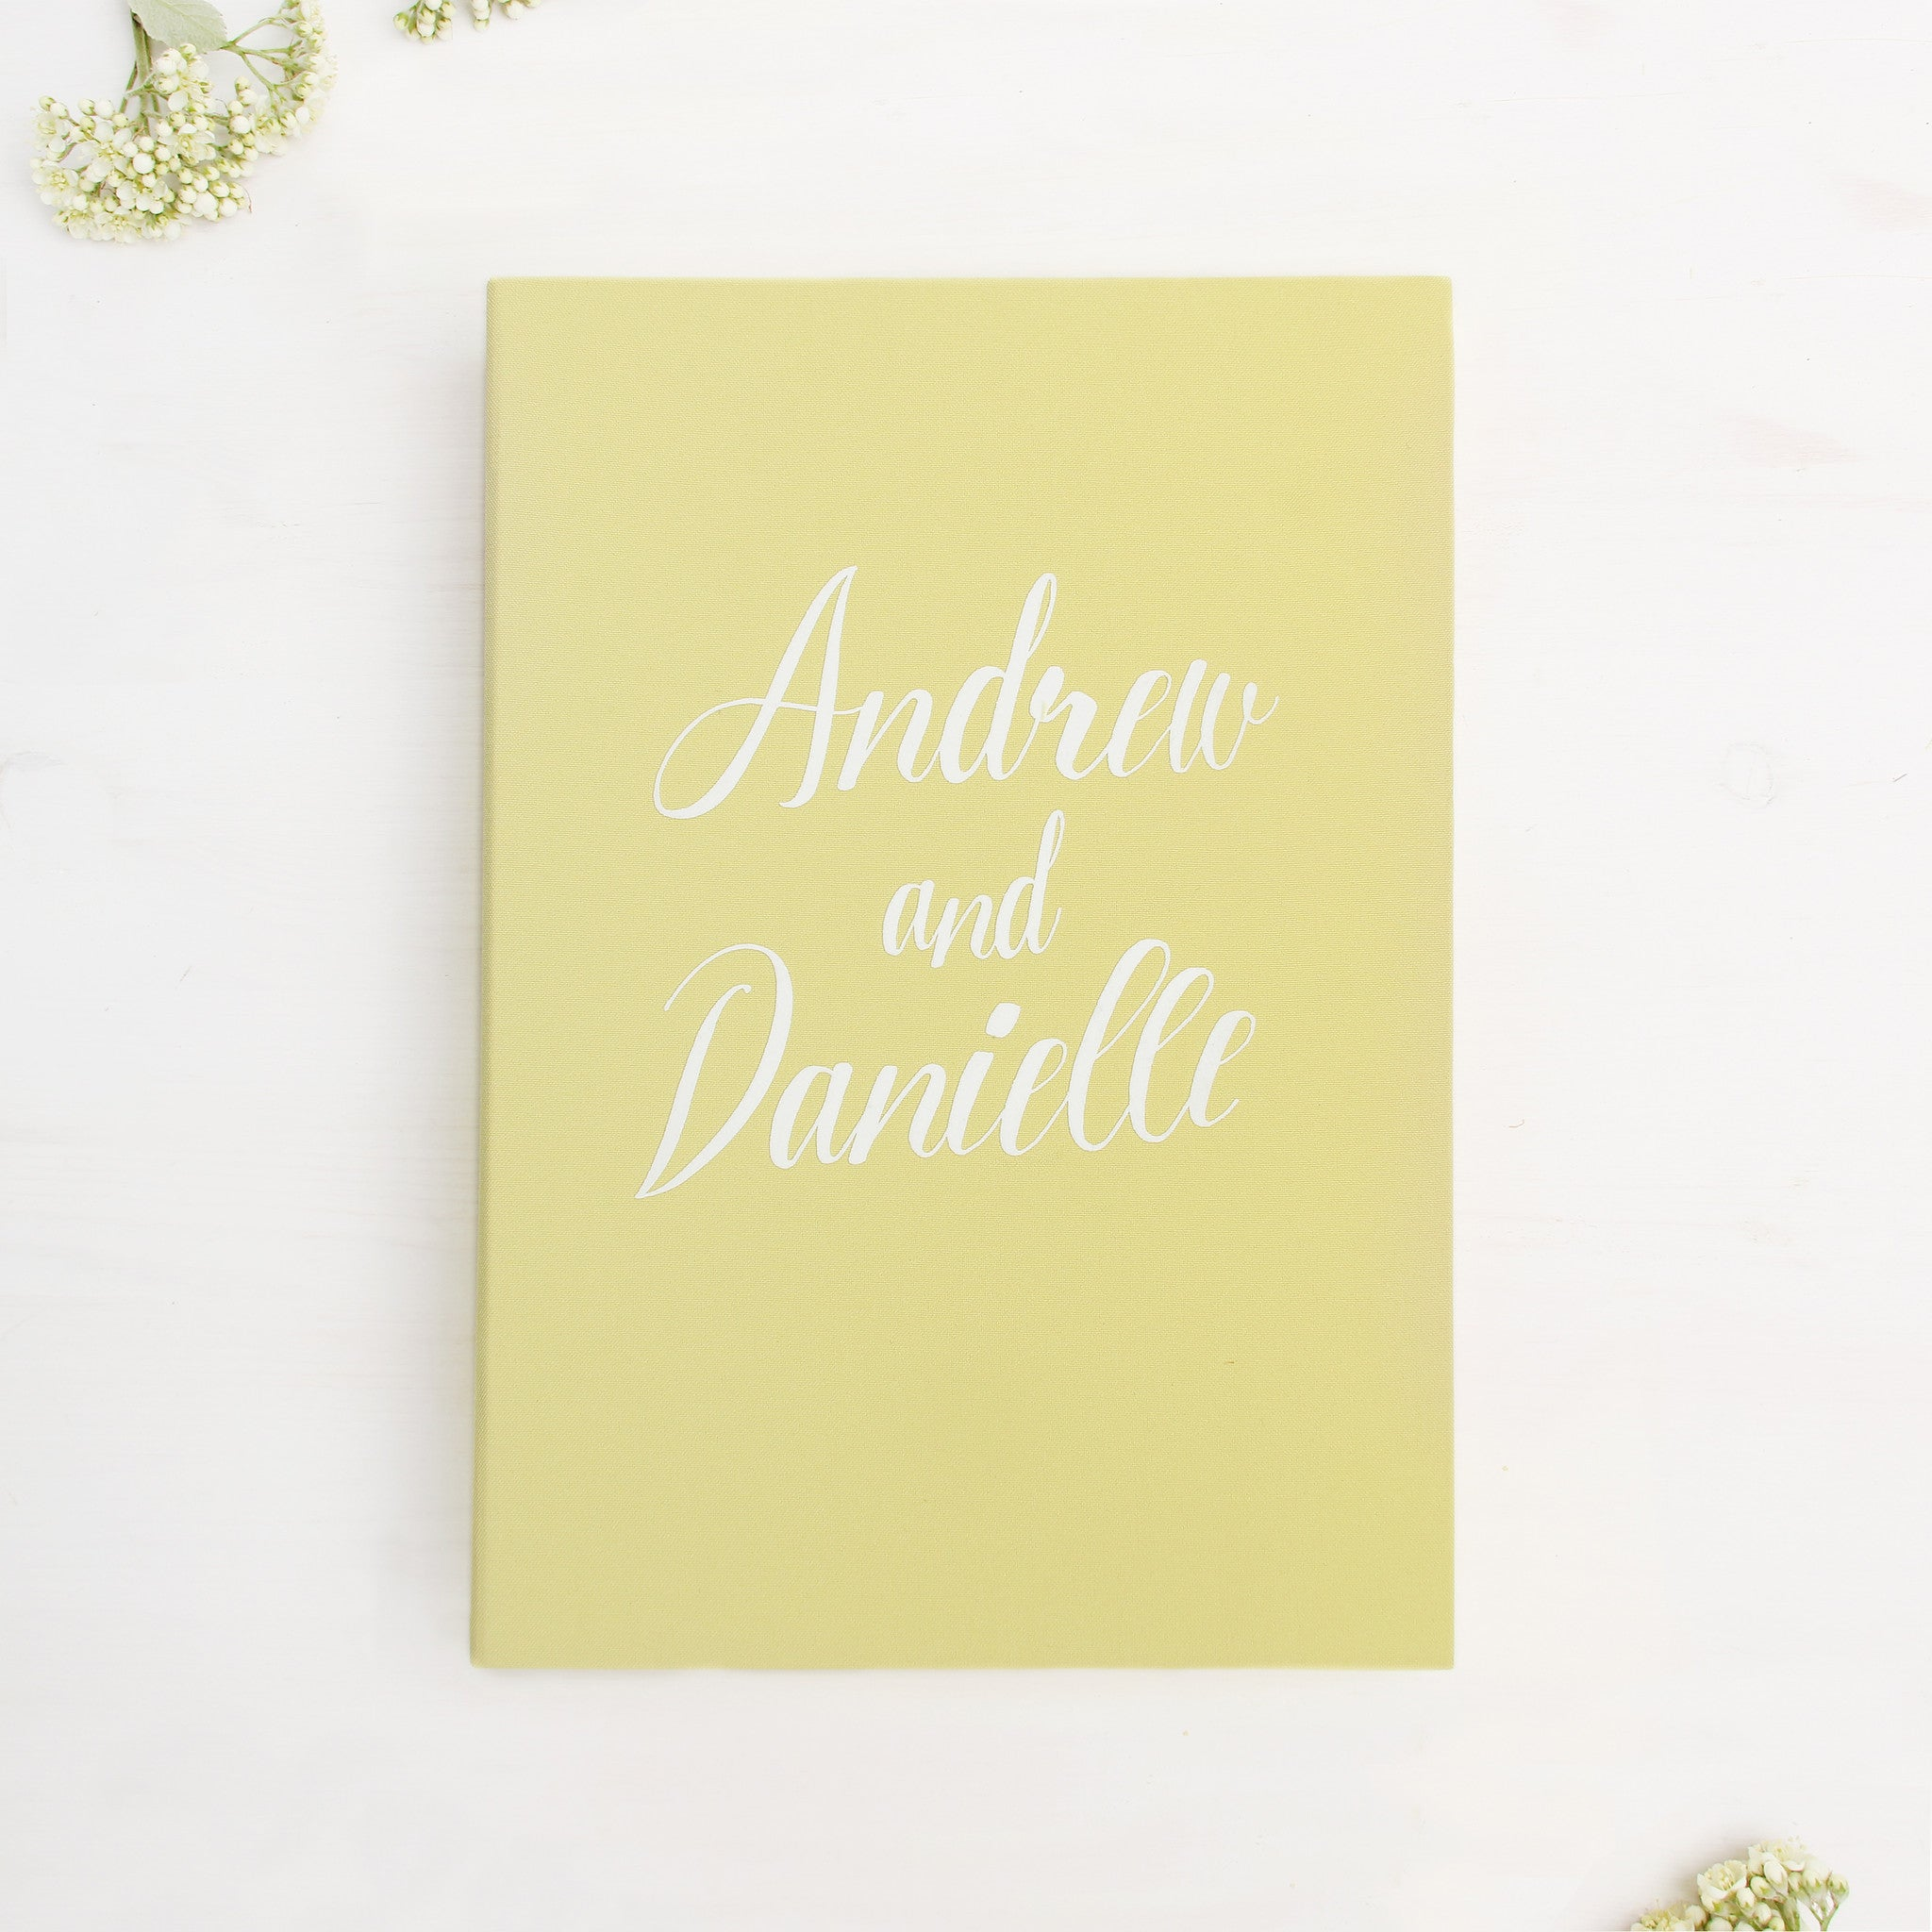 Instax Guest Book Sign in Book Instant Album Yellow with White Lettering - Liumy